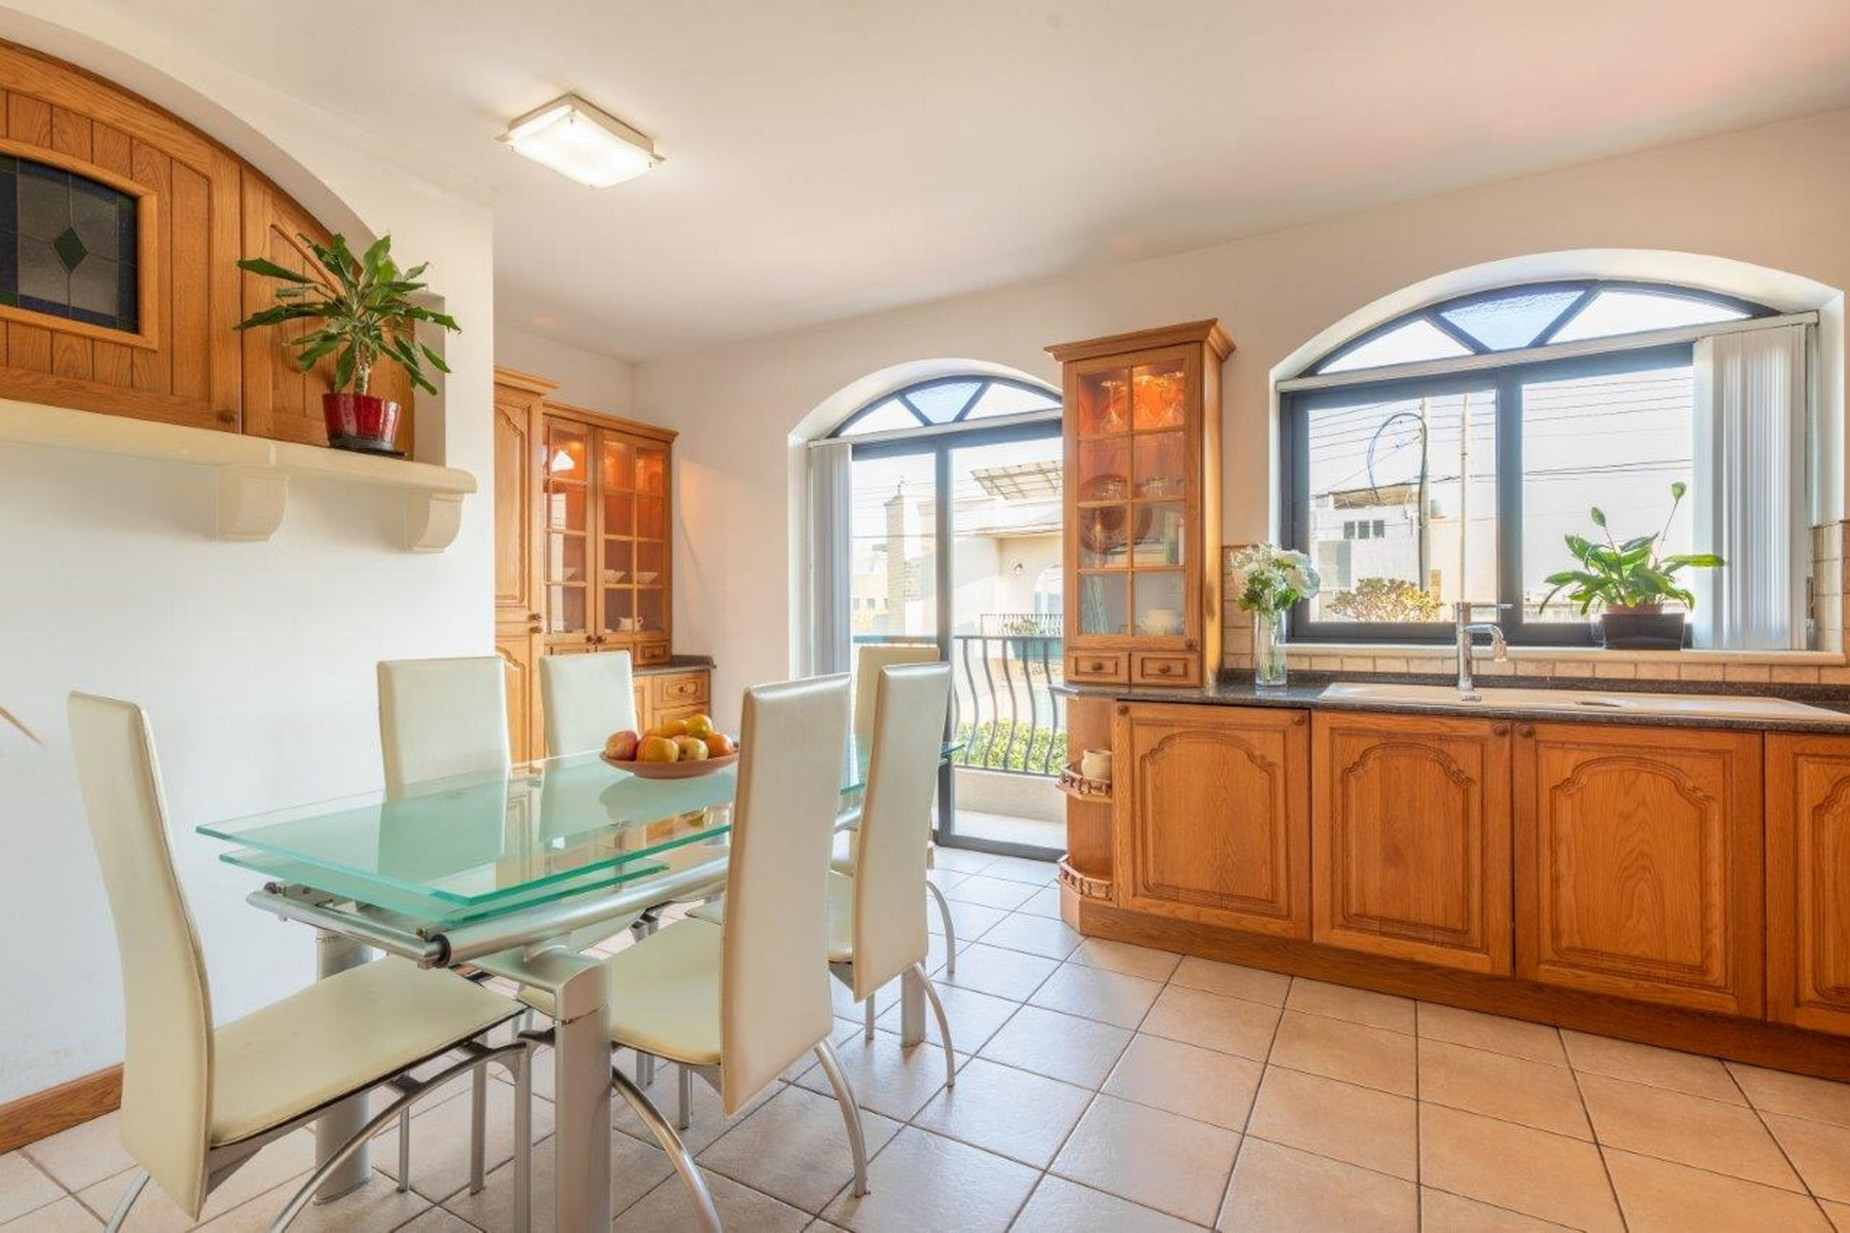 3 bed Apartment For Sale in Attard, Attard - thumb 3